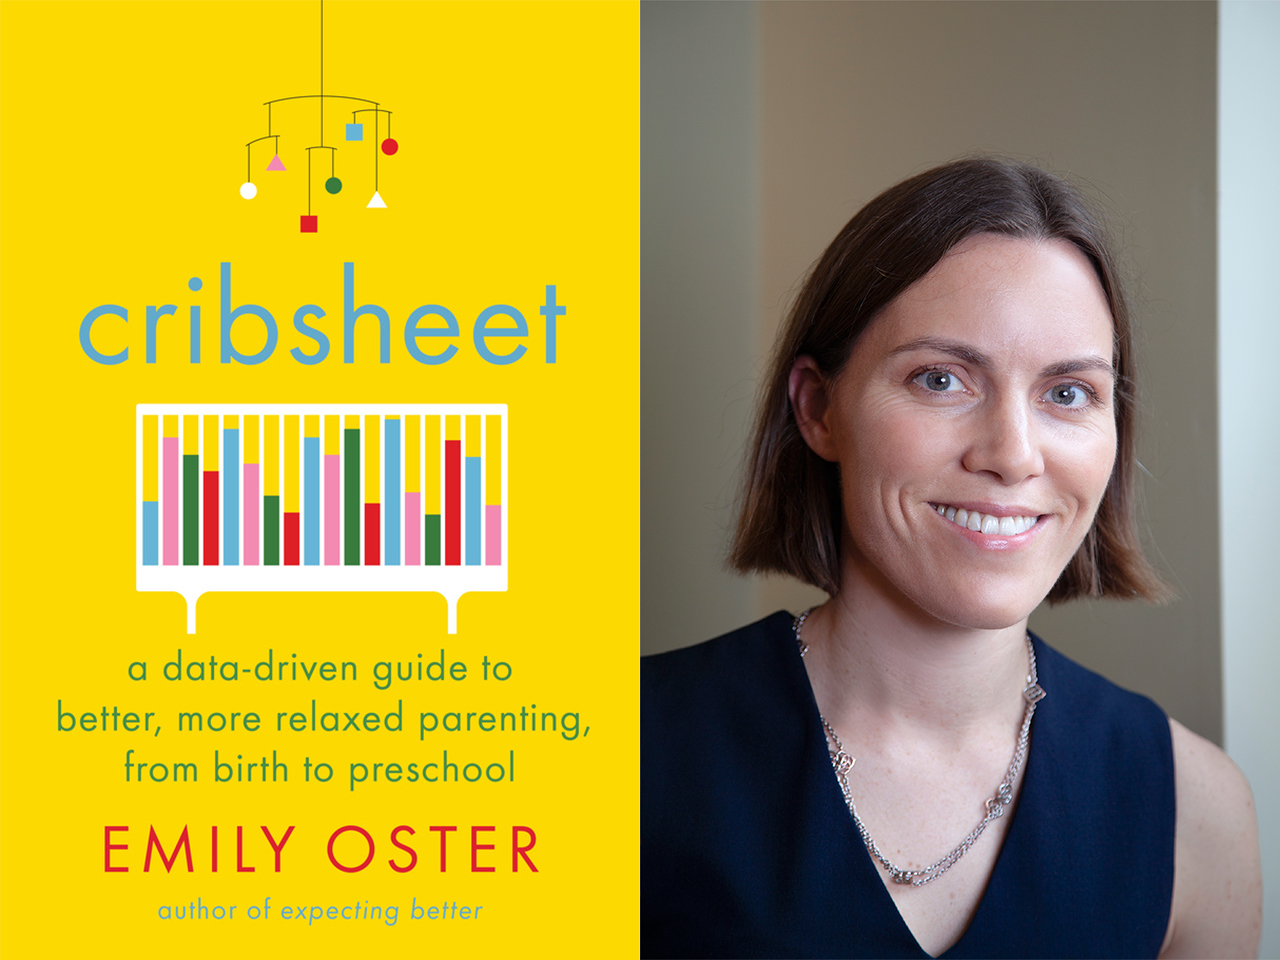 Cribsheet book cover with author photo of Emily Oster